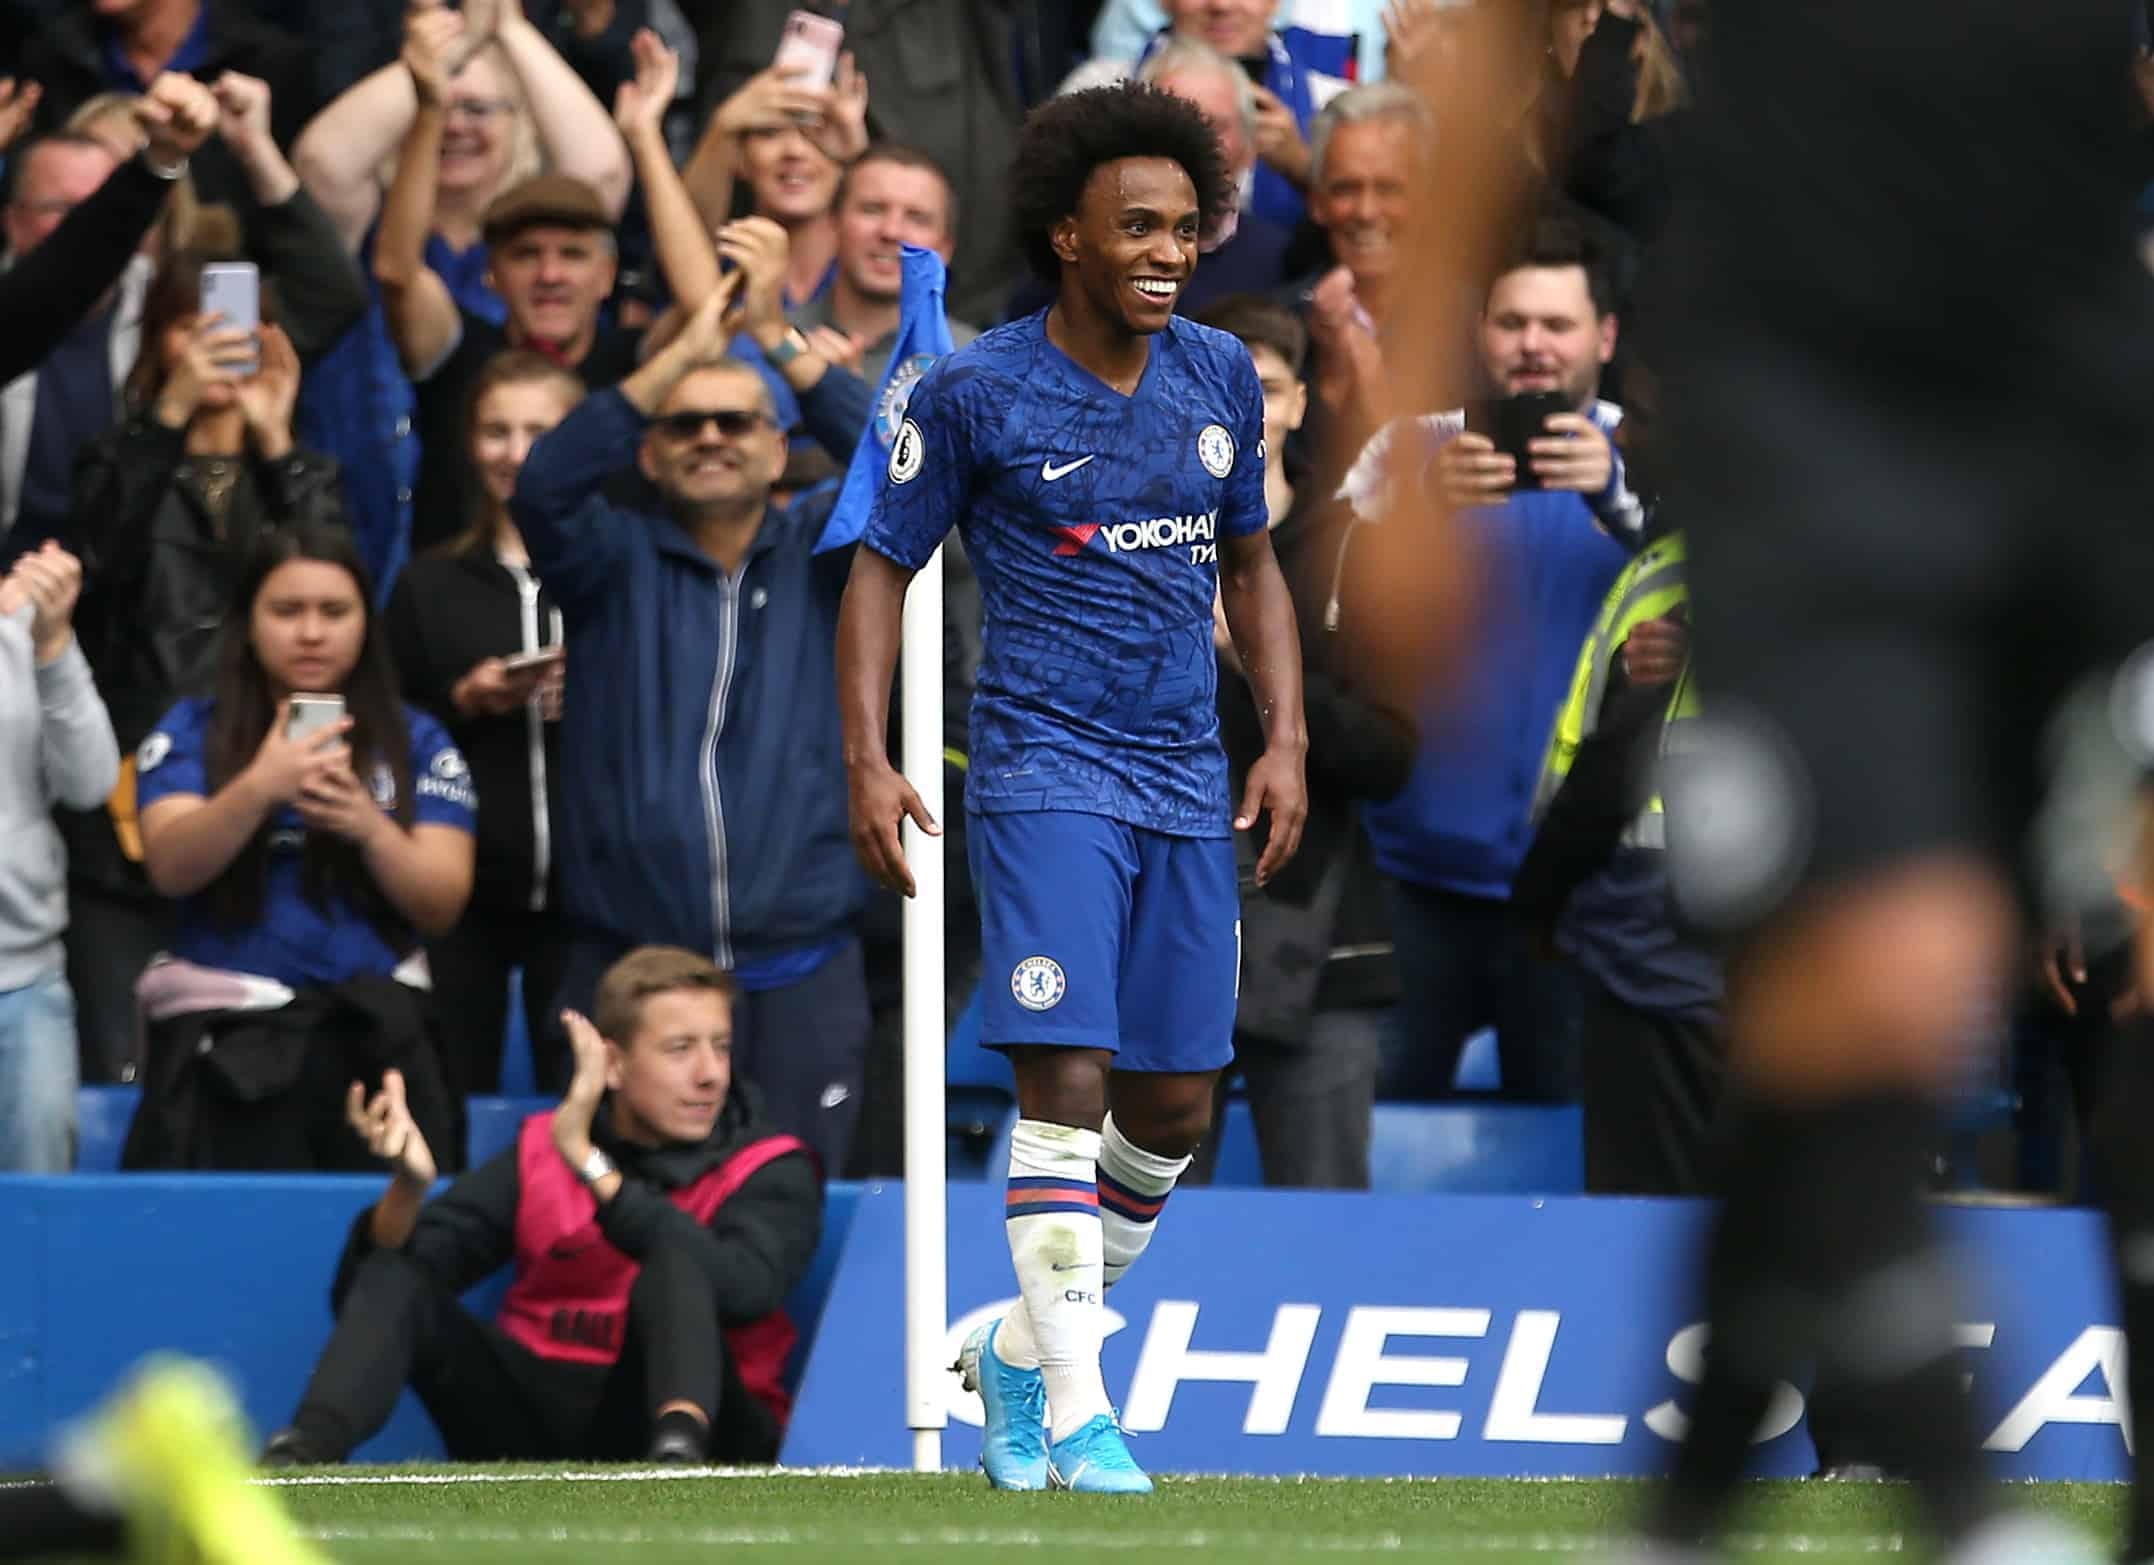 Chelsea's Willian celebrates scoring his side's second goal of the game during the Premier League match at Stamford Bridge, London. Credit;PA